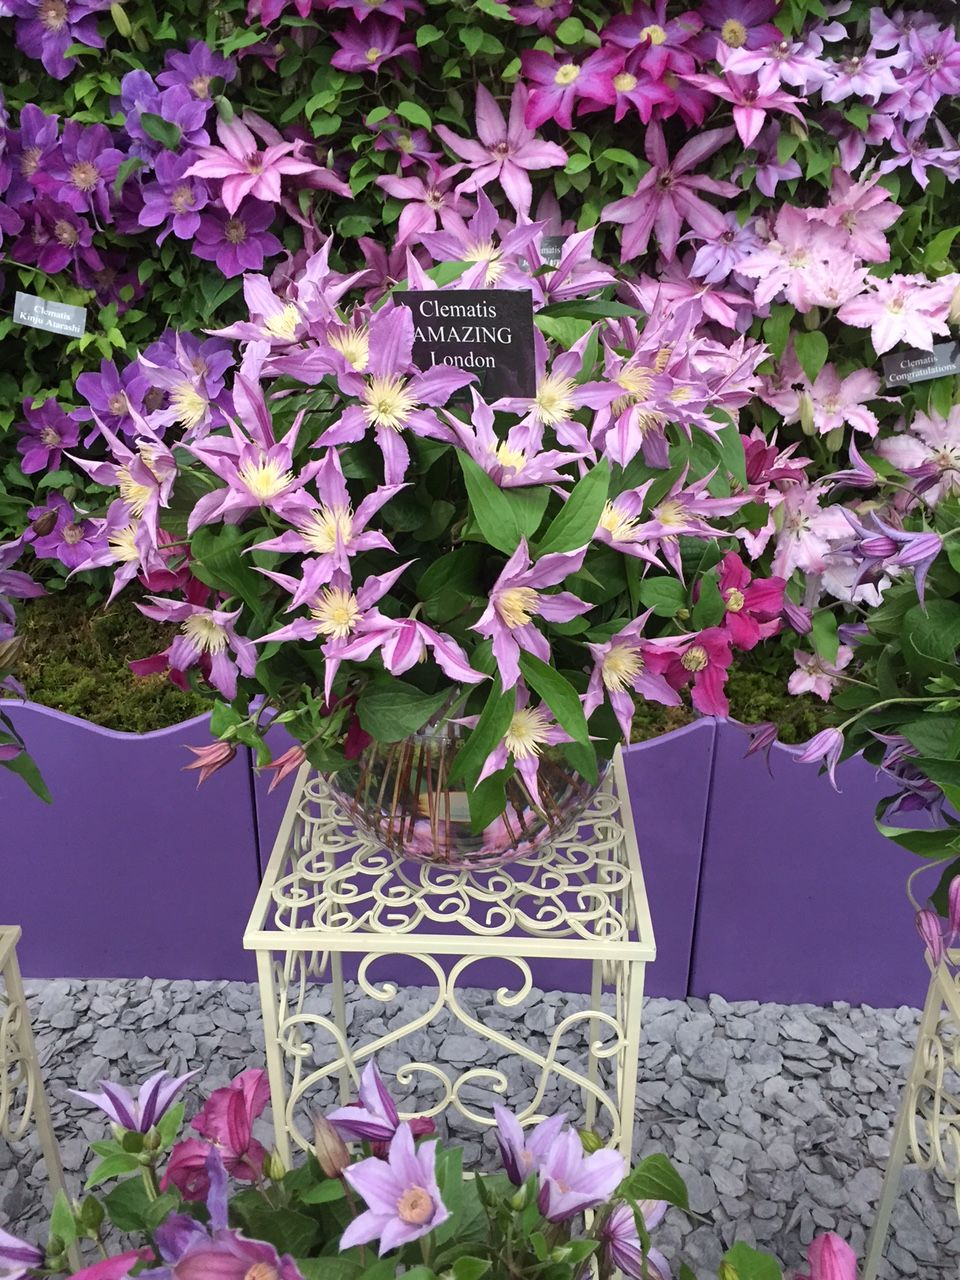 Clematis Amazing London-East river (cut flower)